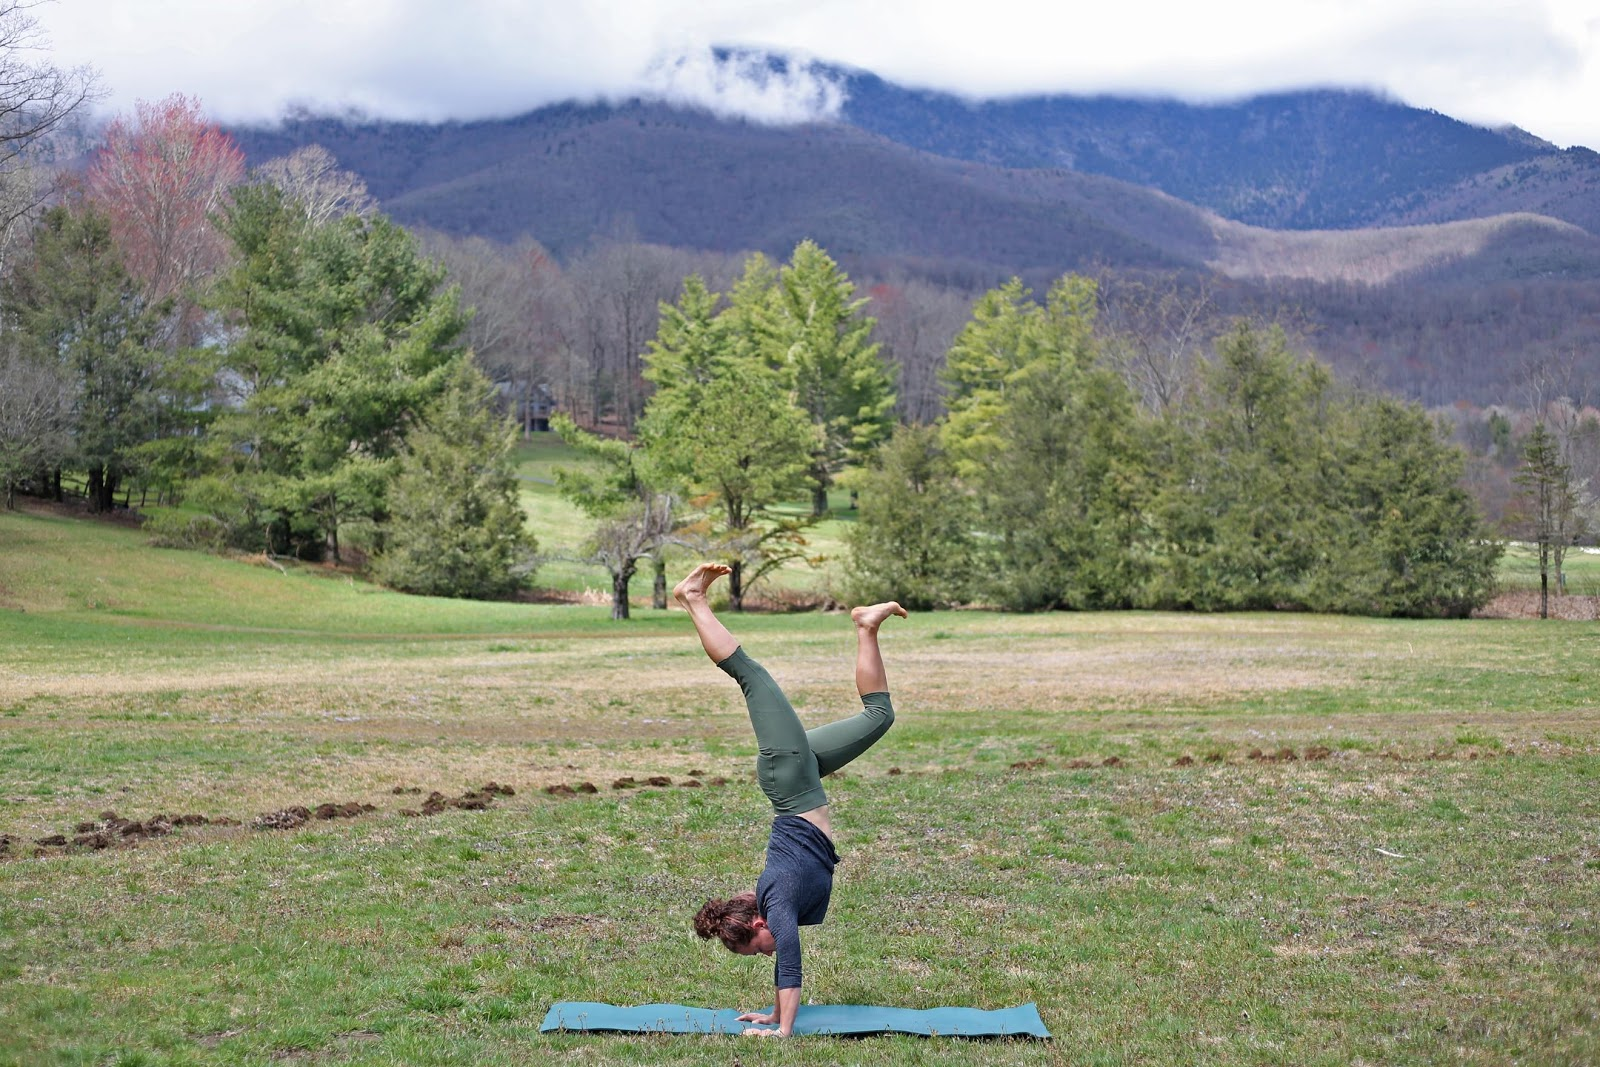 Yoga outside (and in the mountains) is the best. Love my Royal Robbins tights for yoga and hiking.